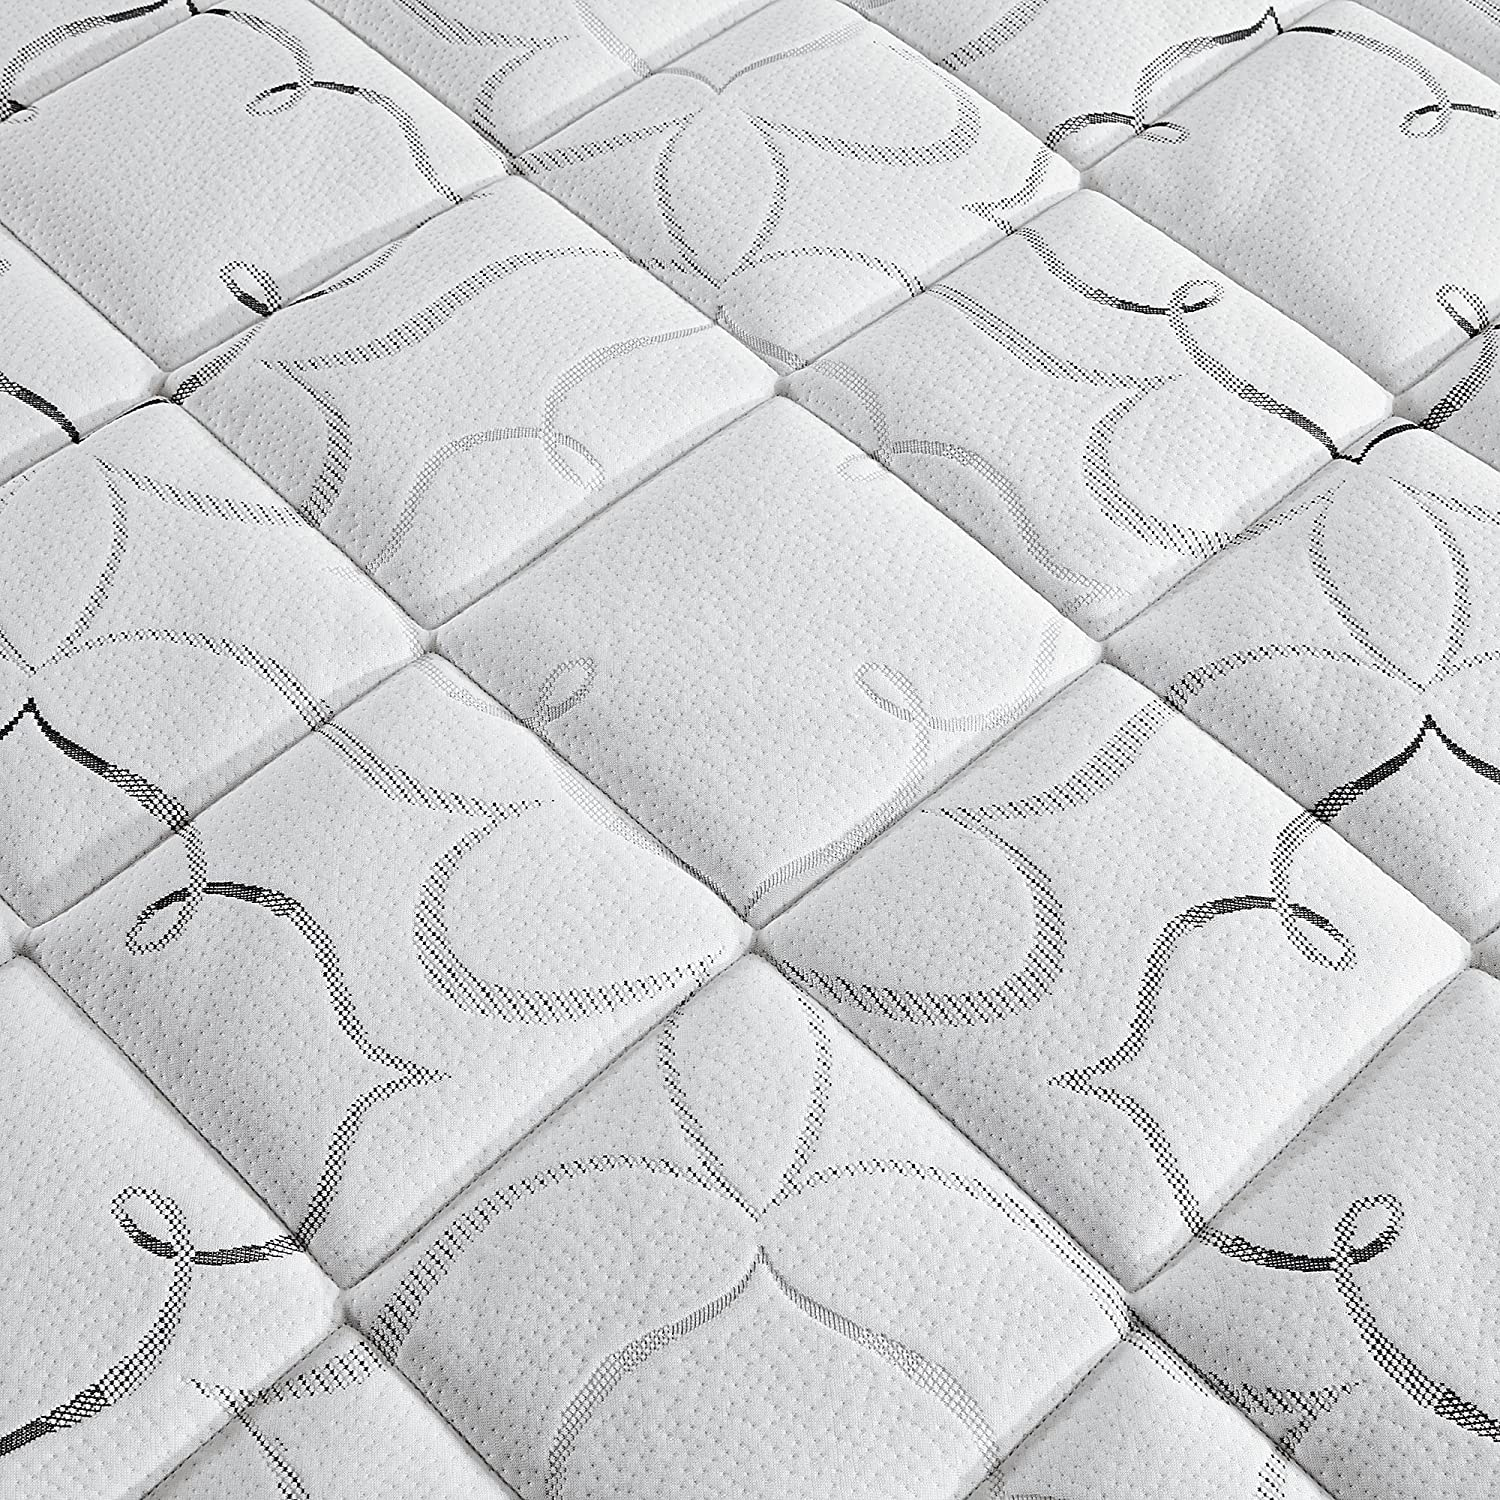 Pale Blue Quilted Coastal Seashells 4 Pieces Bedding Sets Harbor House Crystal Beach Full Size Bed Comforter Set 100/% Cotton Bedroom Comforters E/&E Co Ltd DBA JLA Home HH10-701